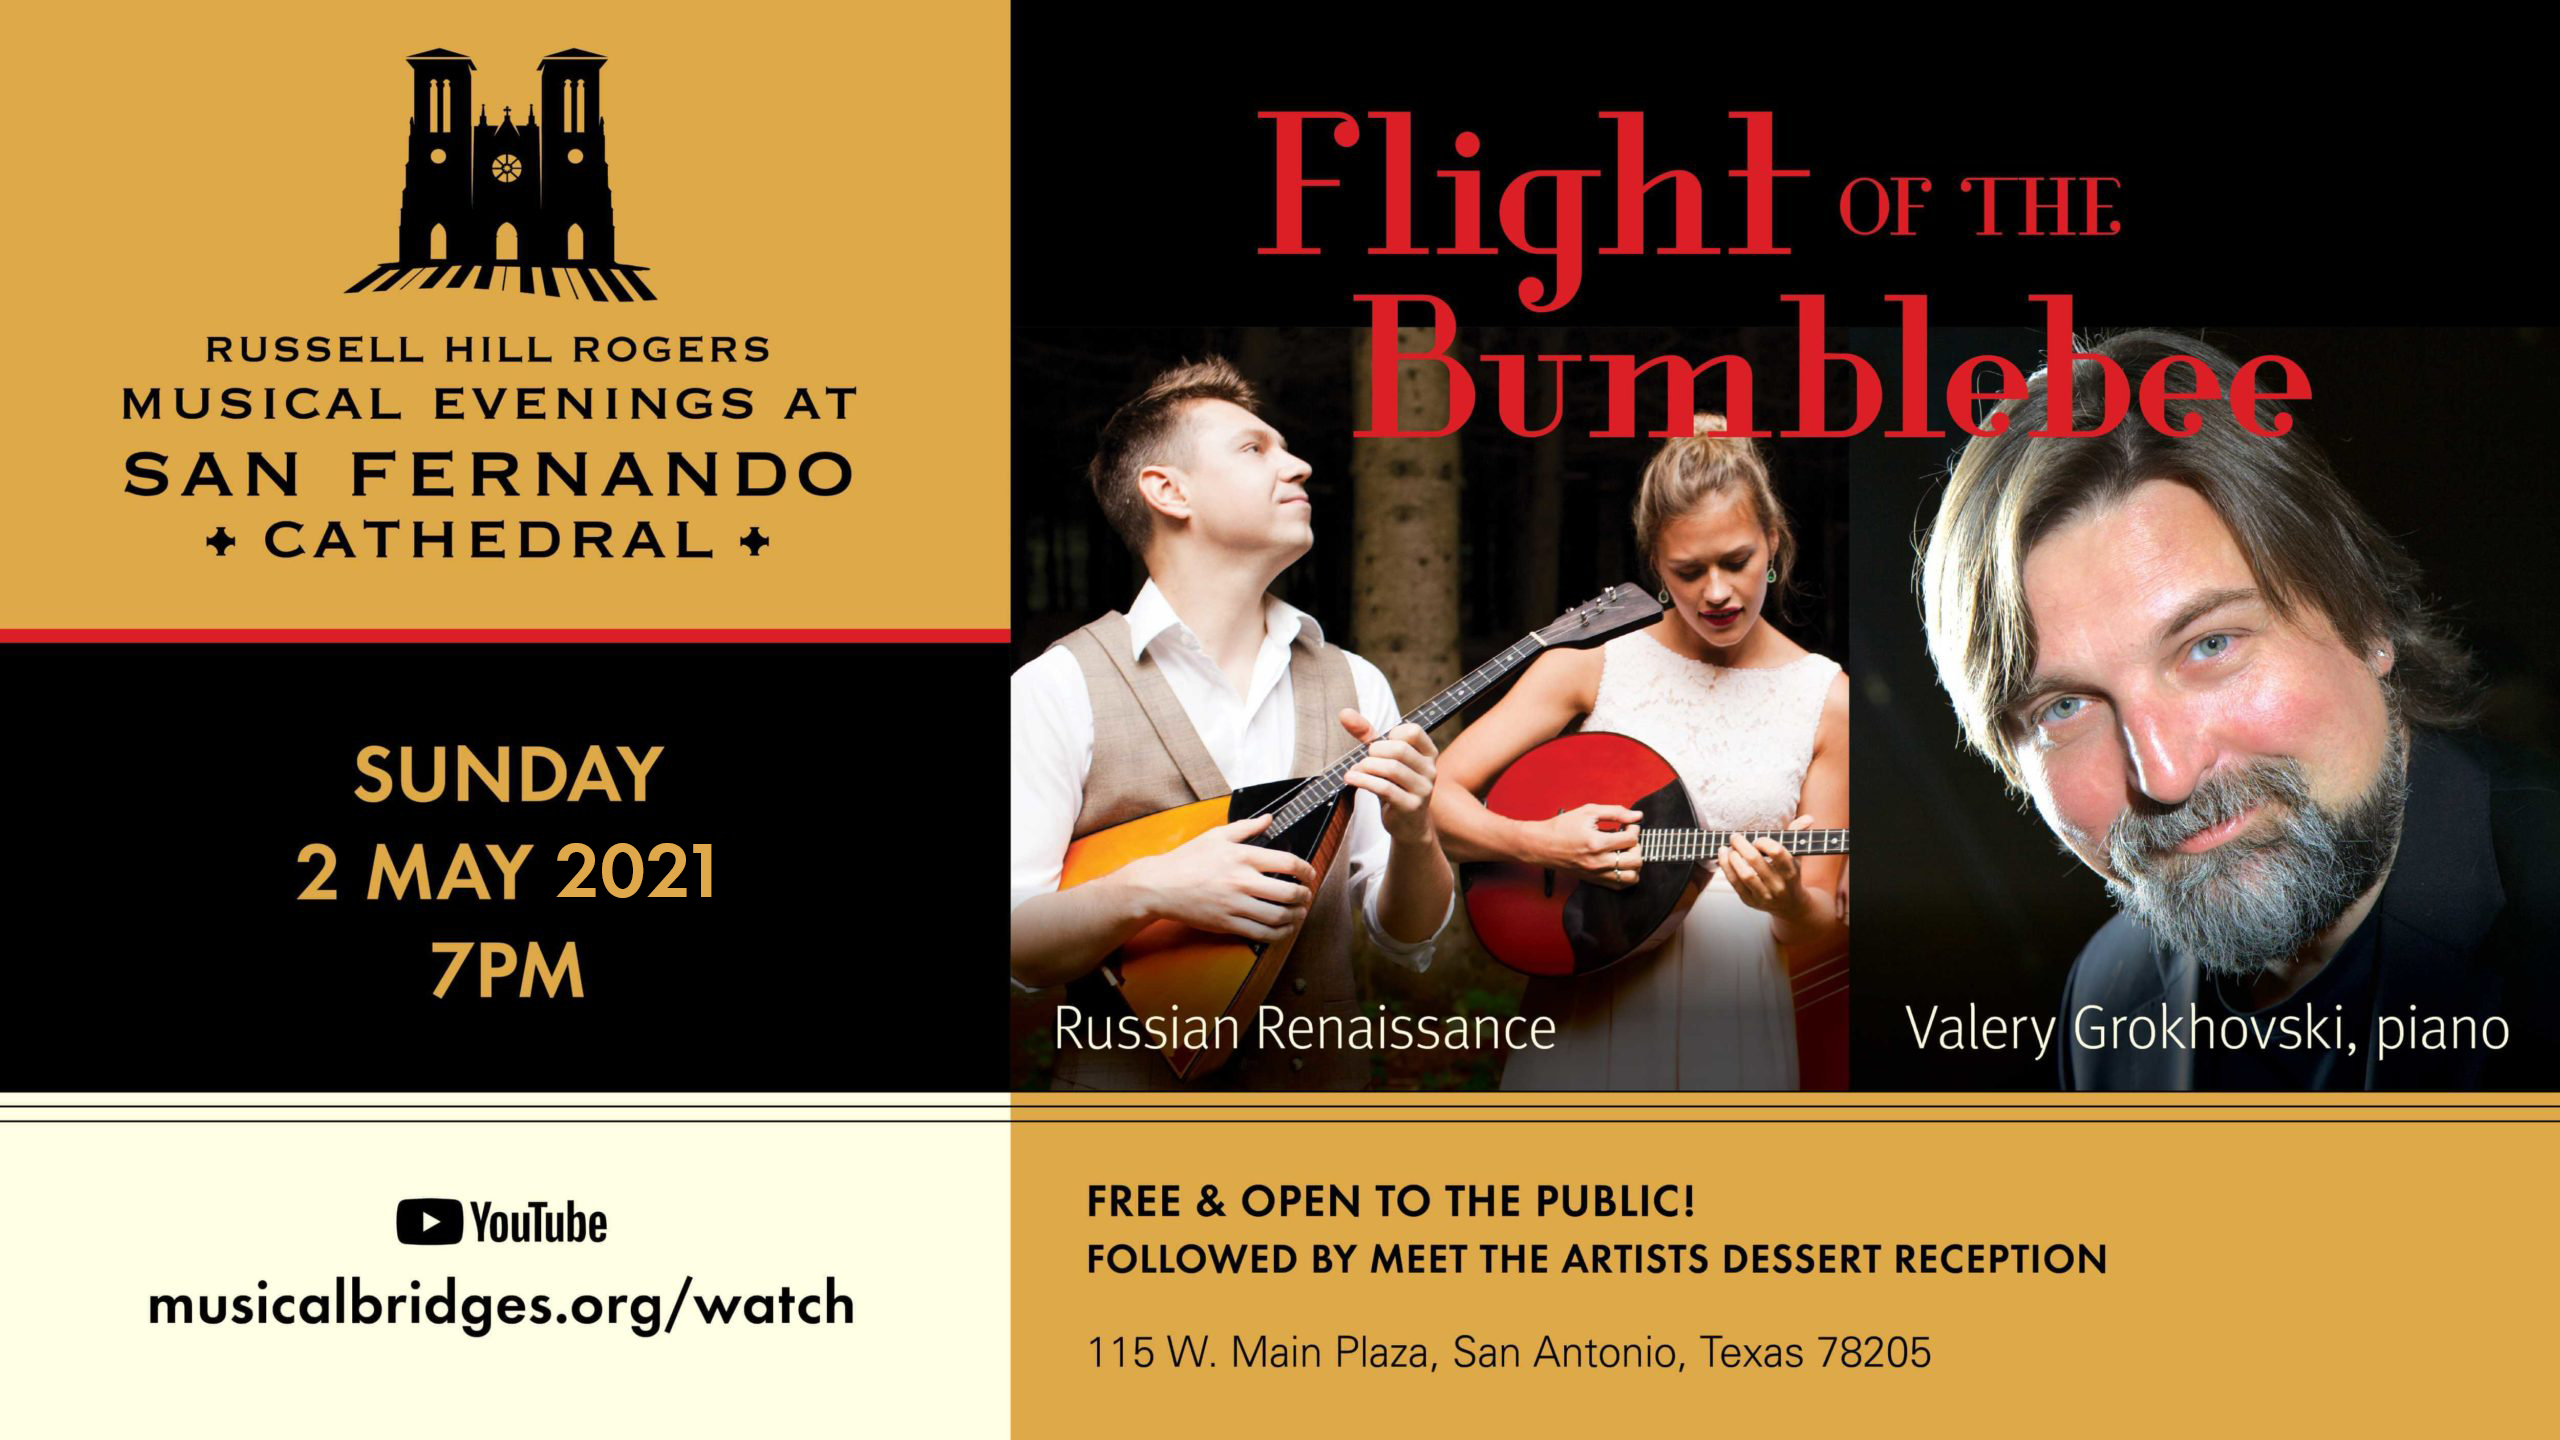 Flight Of The Bumblebee Musical Evenings At San Fernando Cathedral Musical Bridges Around The World